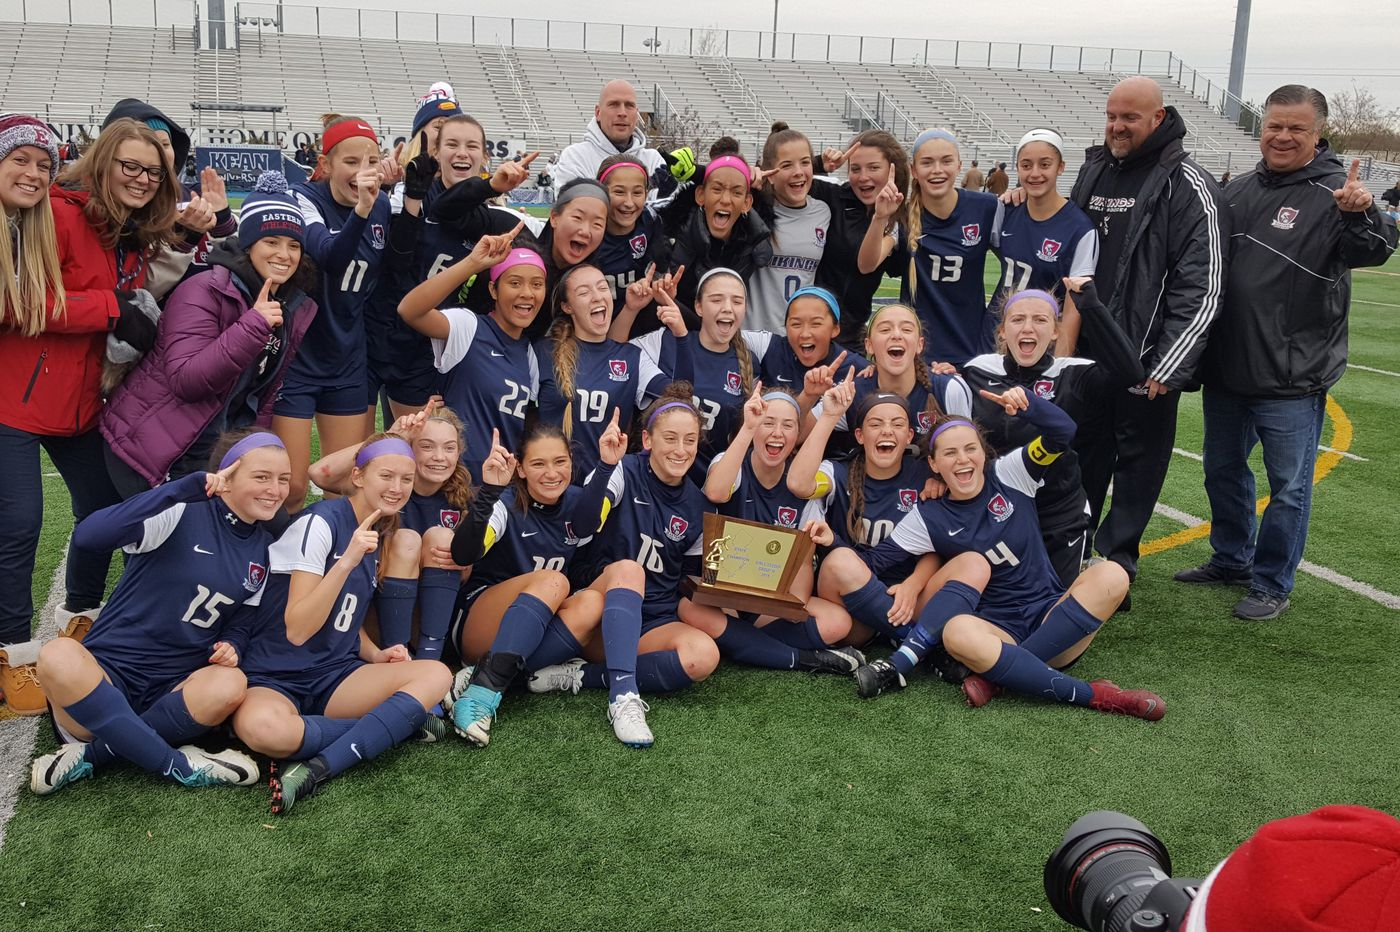 Eastern girls capture state soccer title on Kelli McGroarty's goal